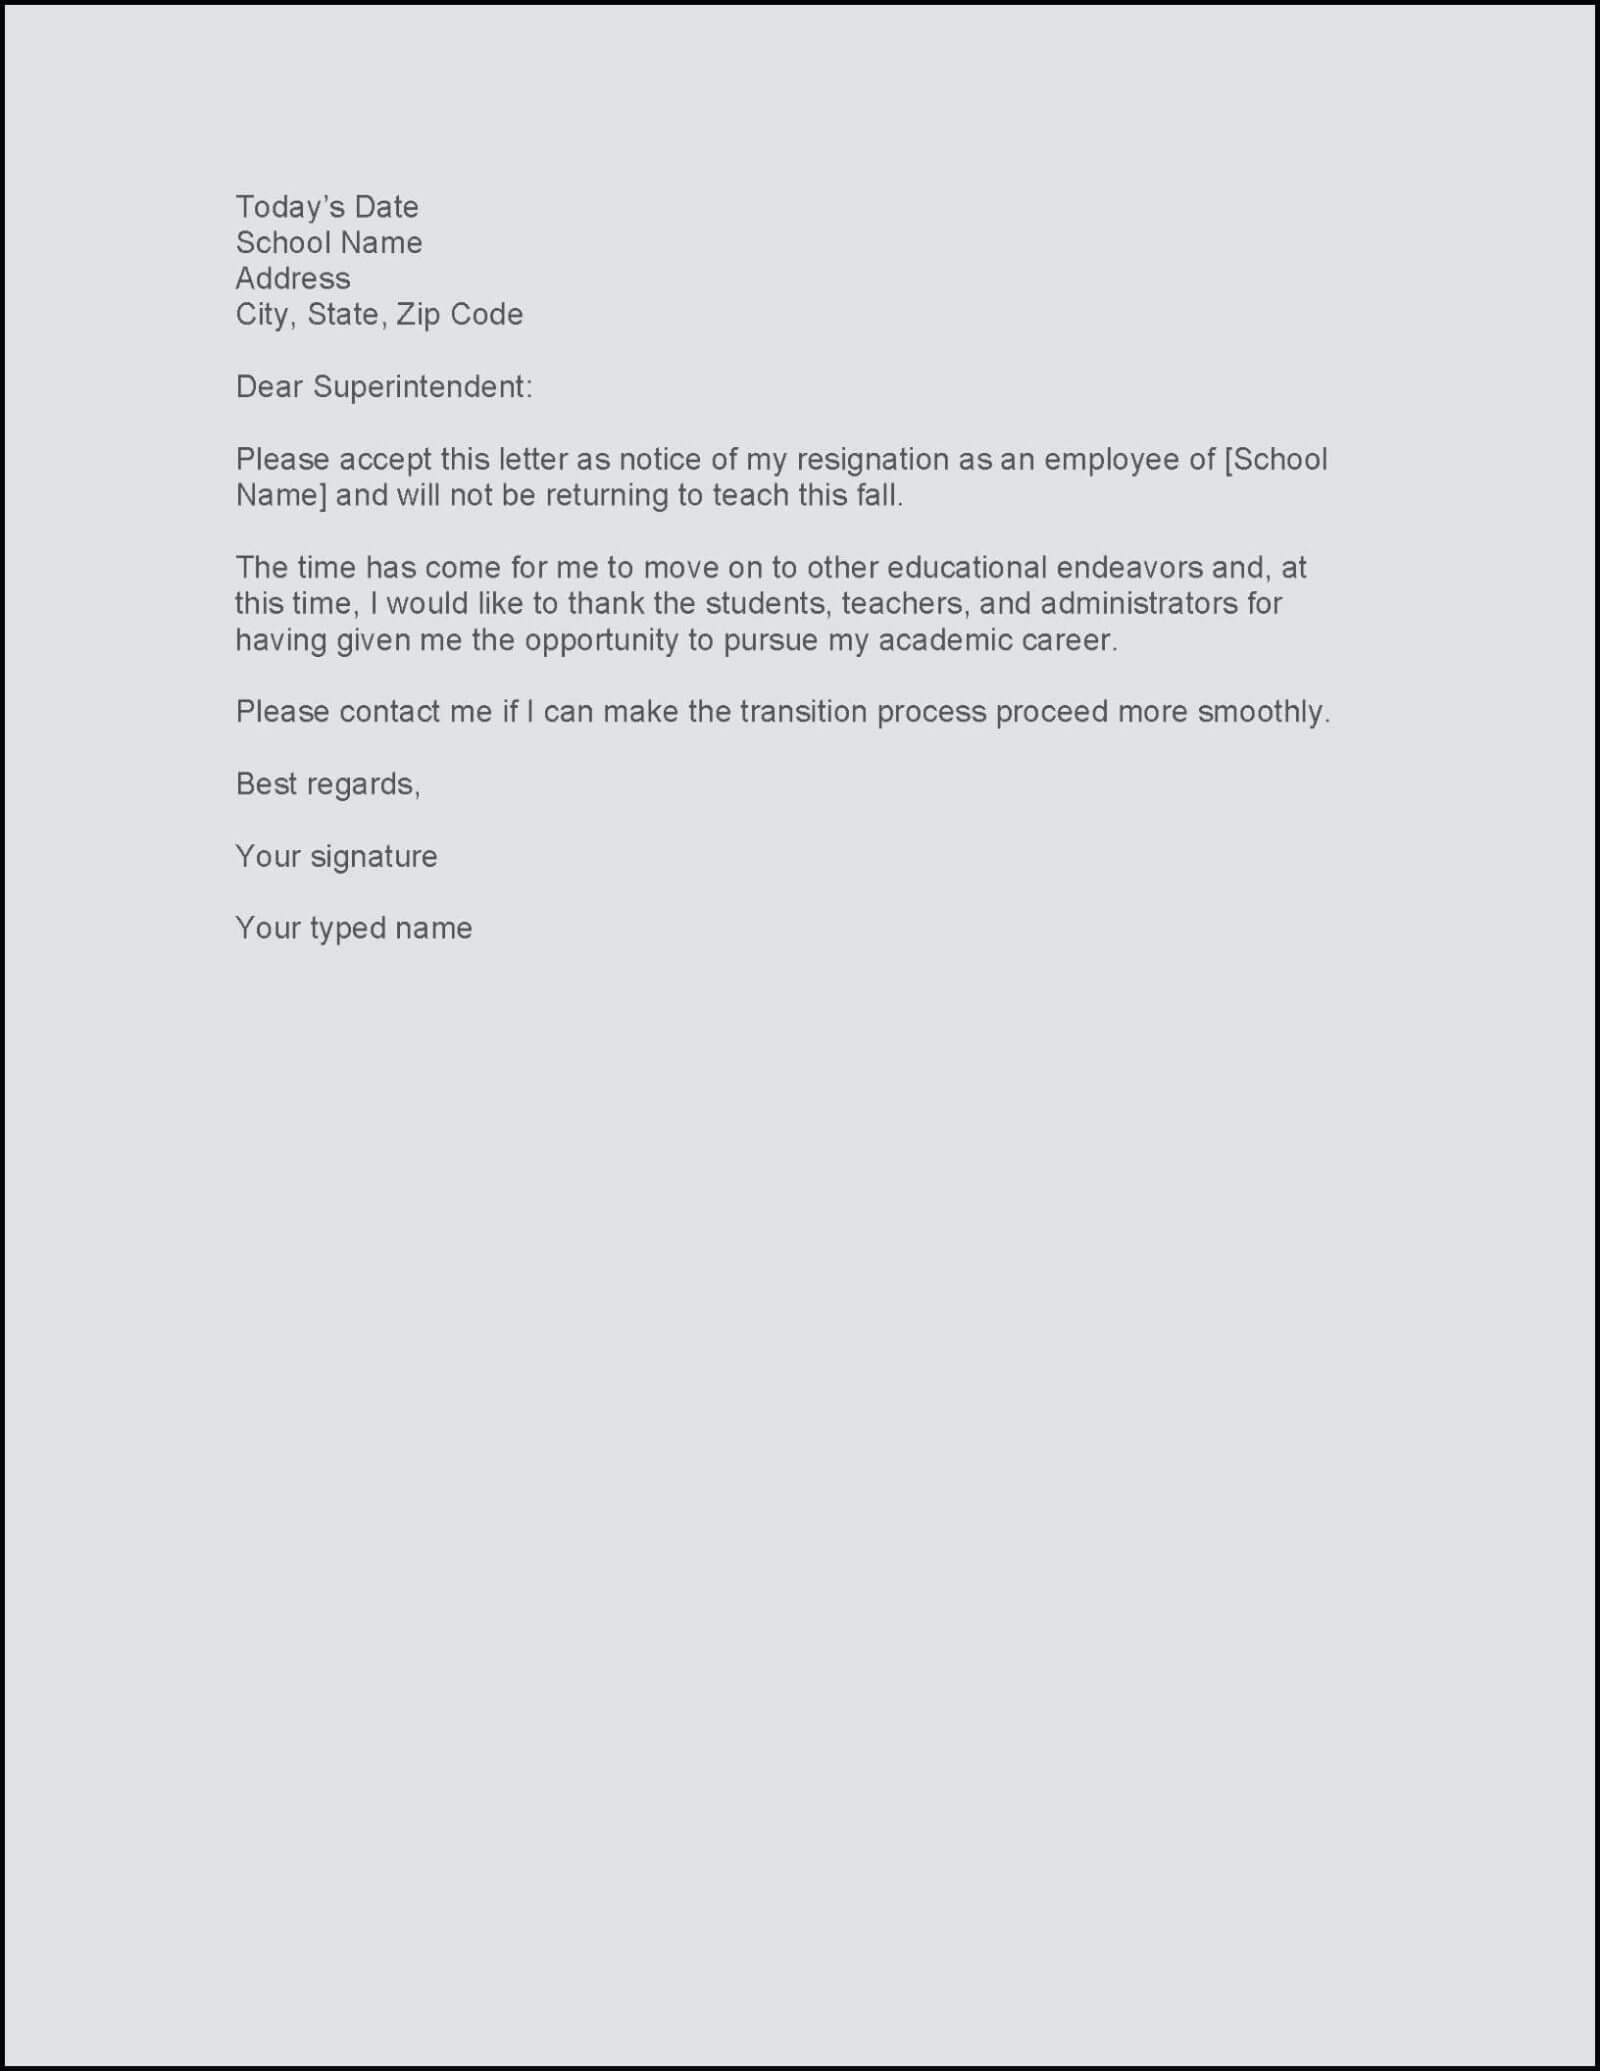 Resignation Letter Sample For Hotel Industry Template Word With Regard To 2 Weeks Notice Template Word